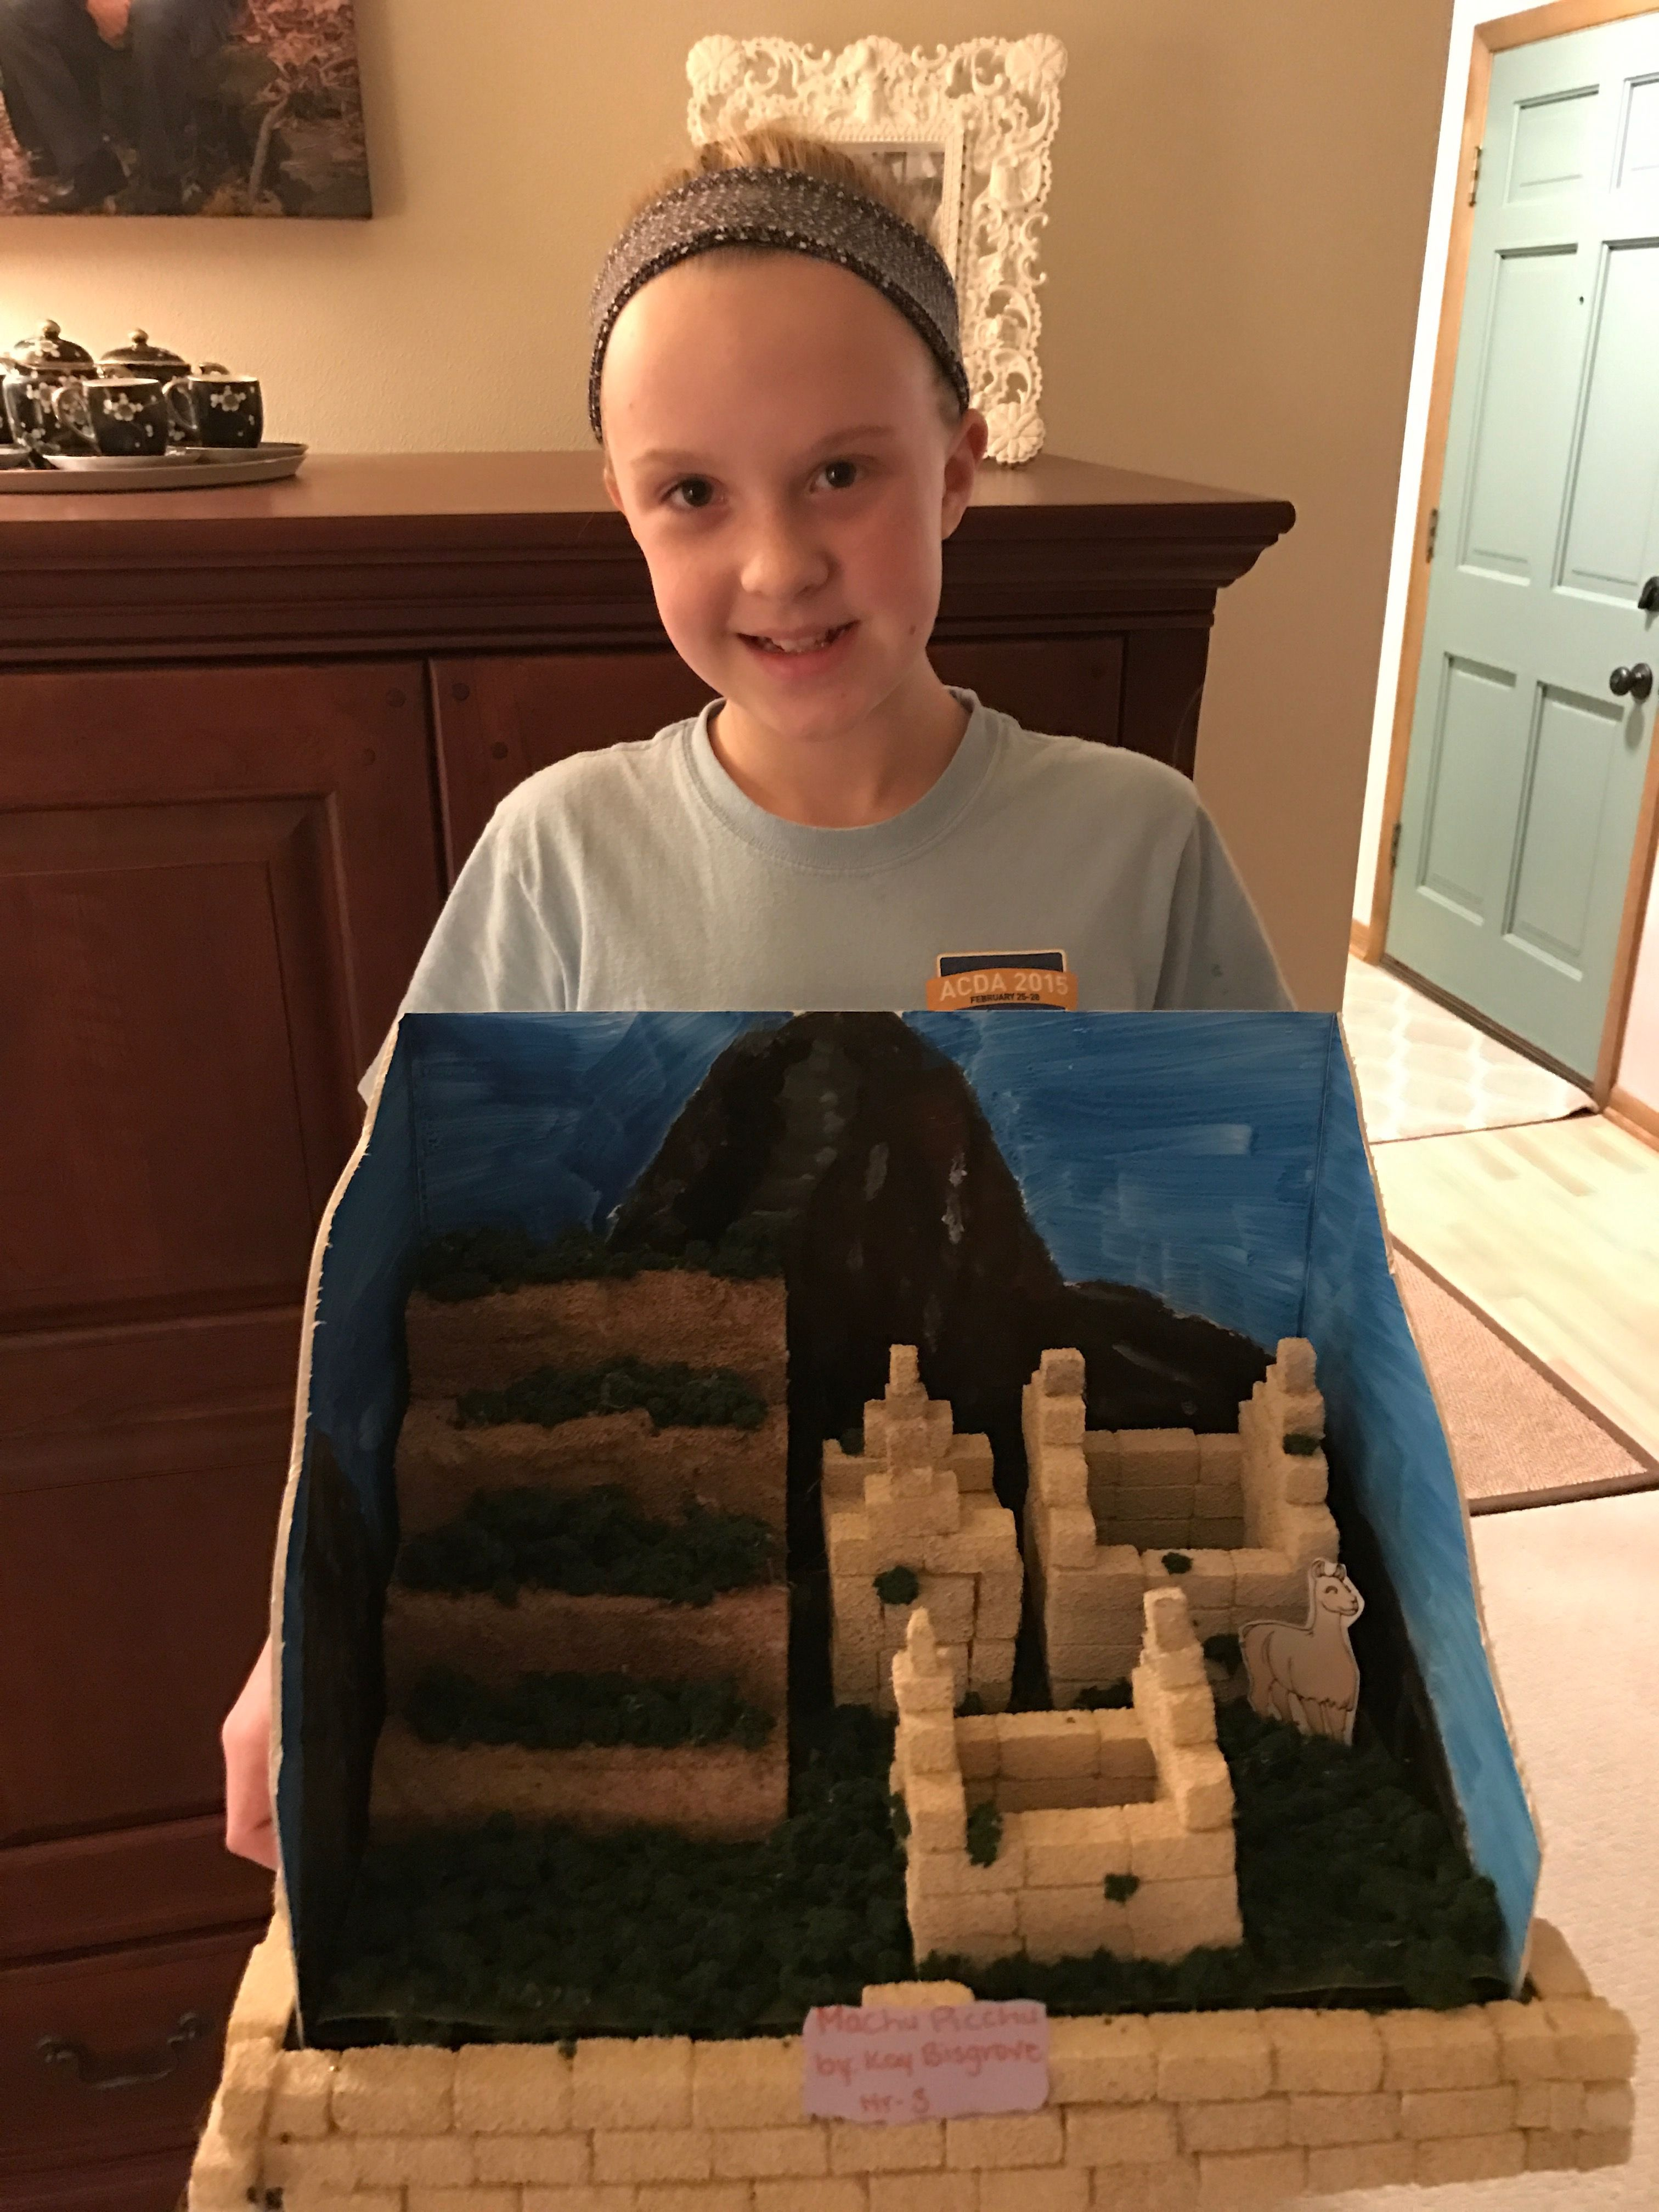 Machu Picchu 3d Design Kids Project With Images